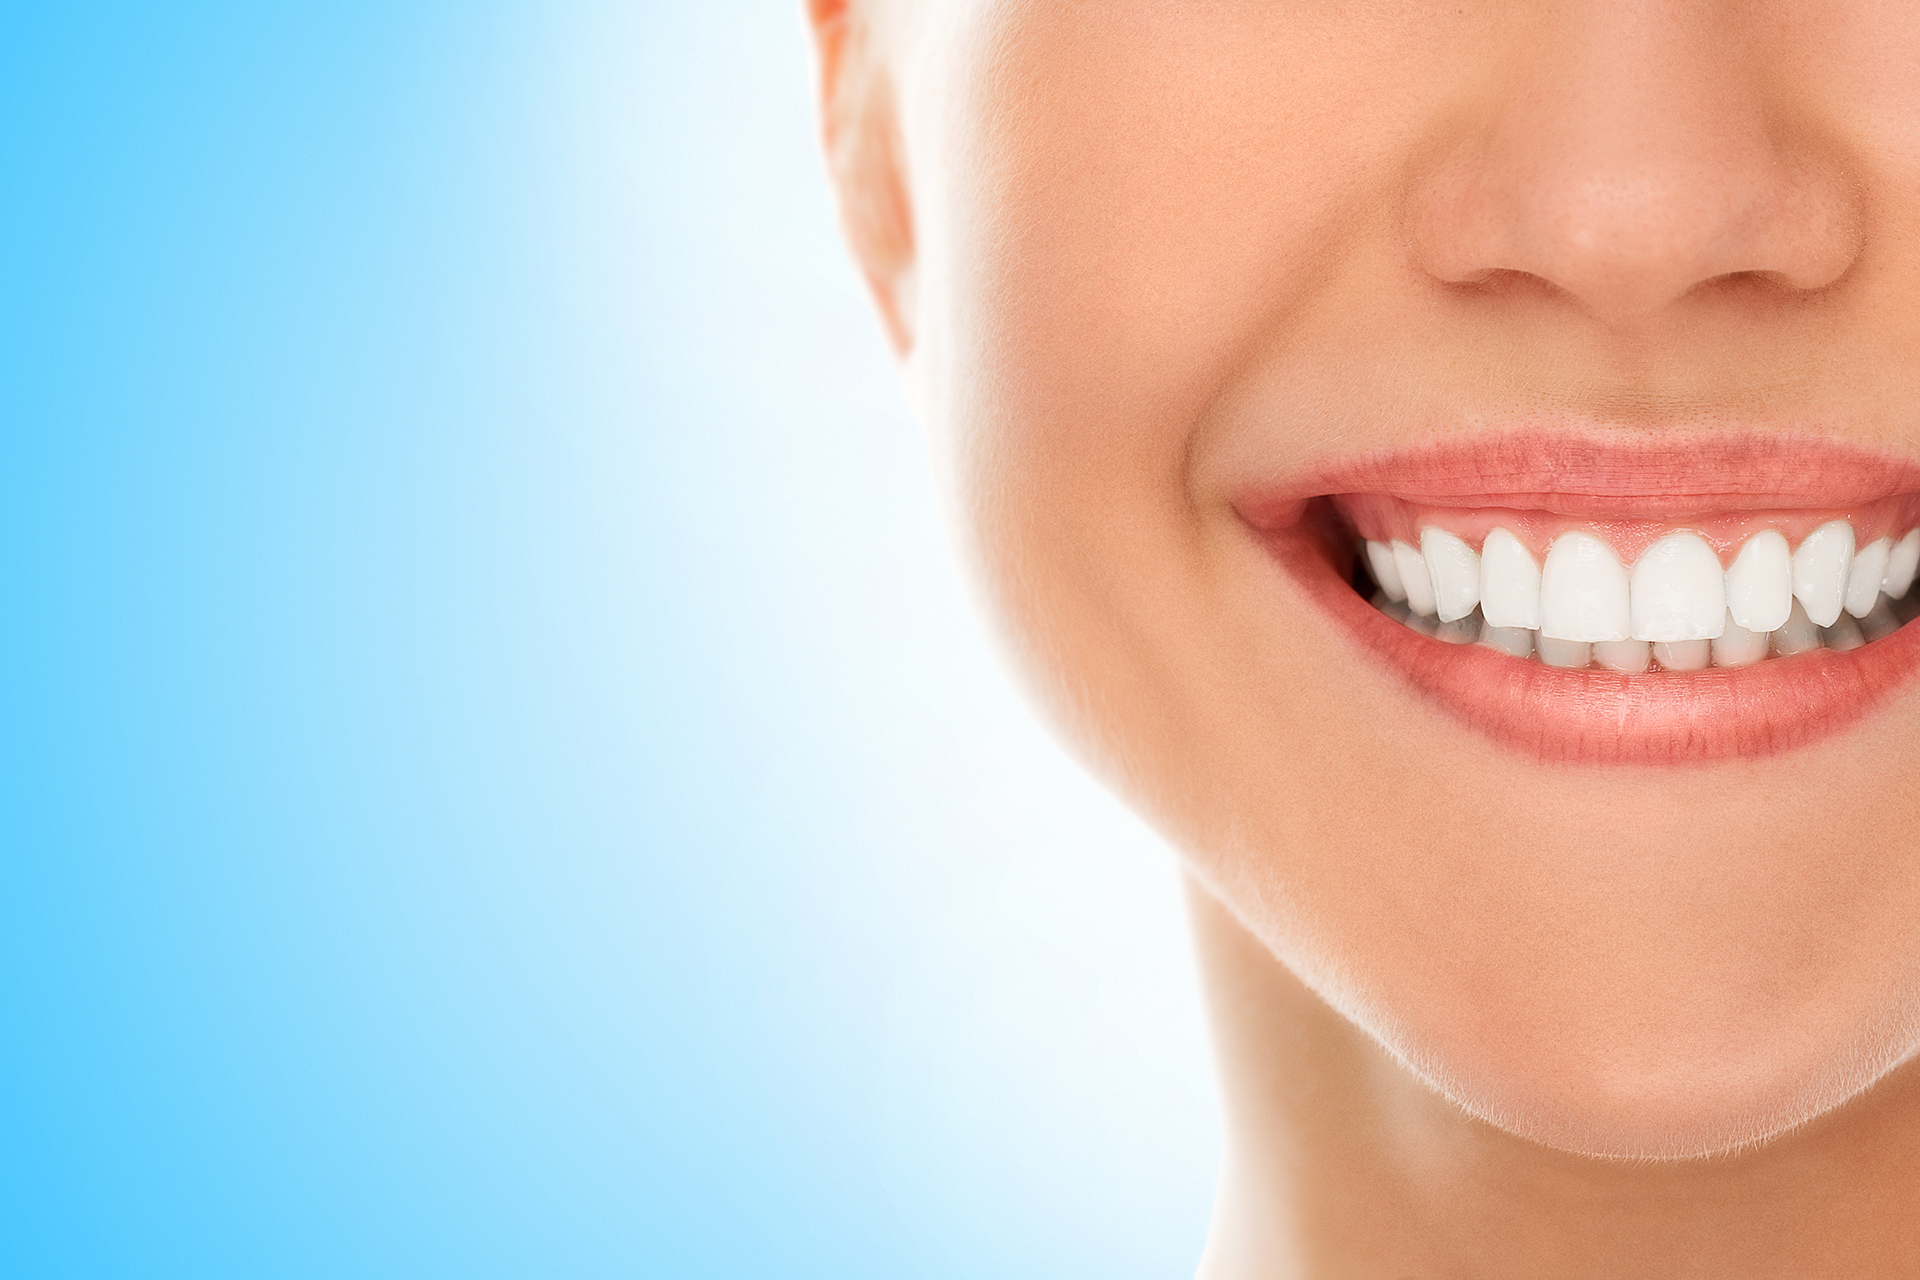 smile design dentistry chennai